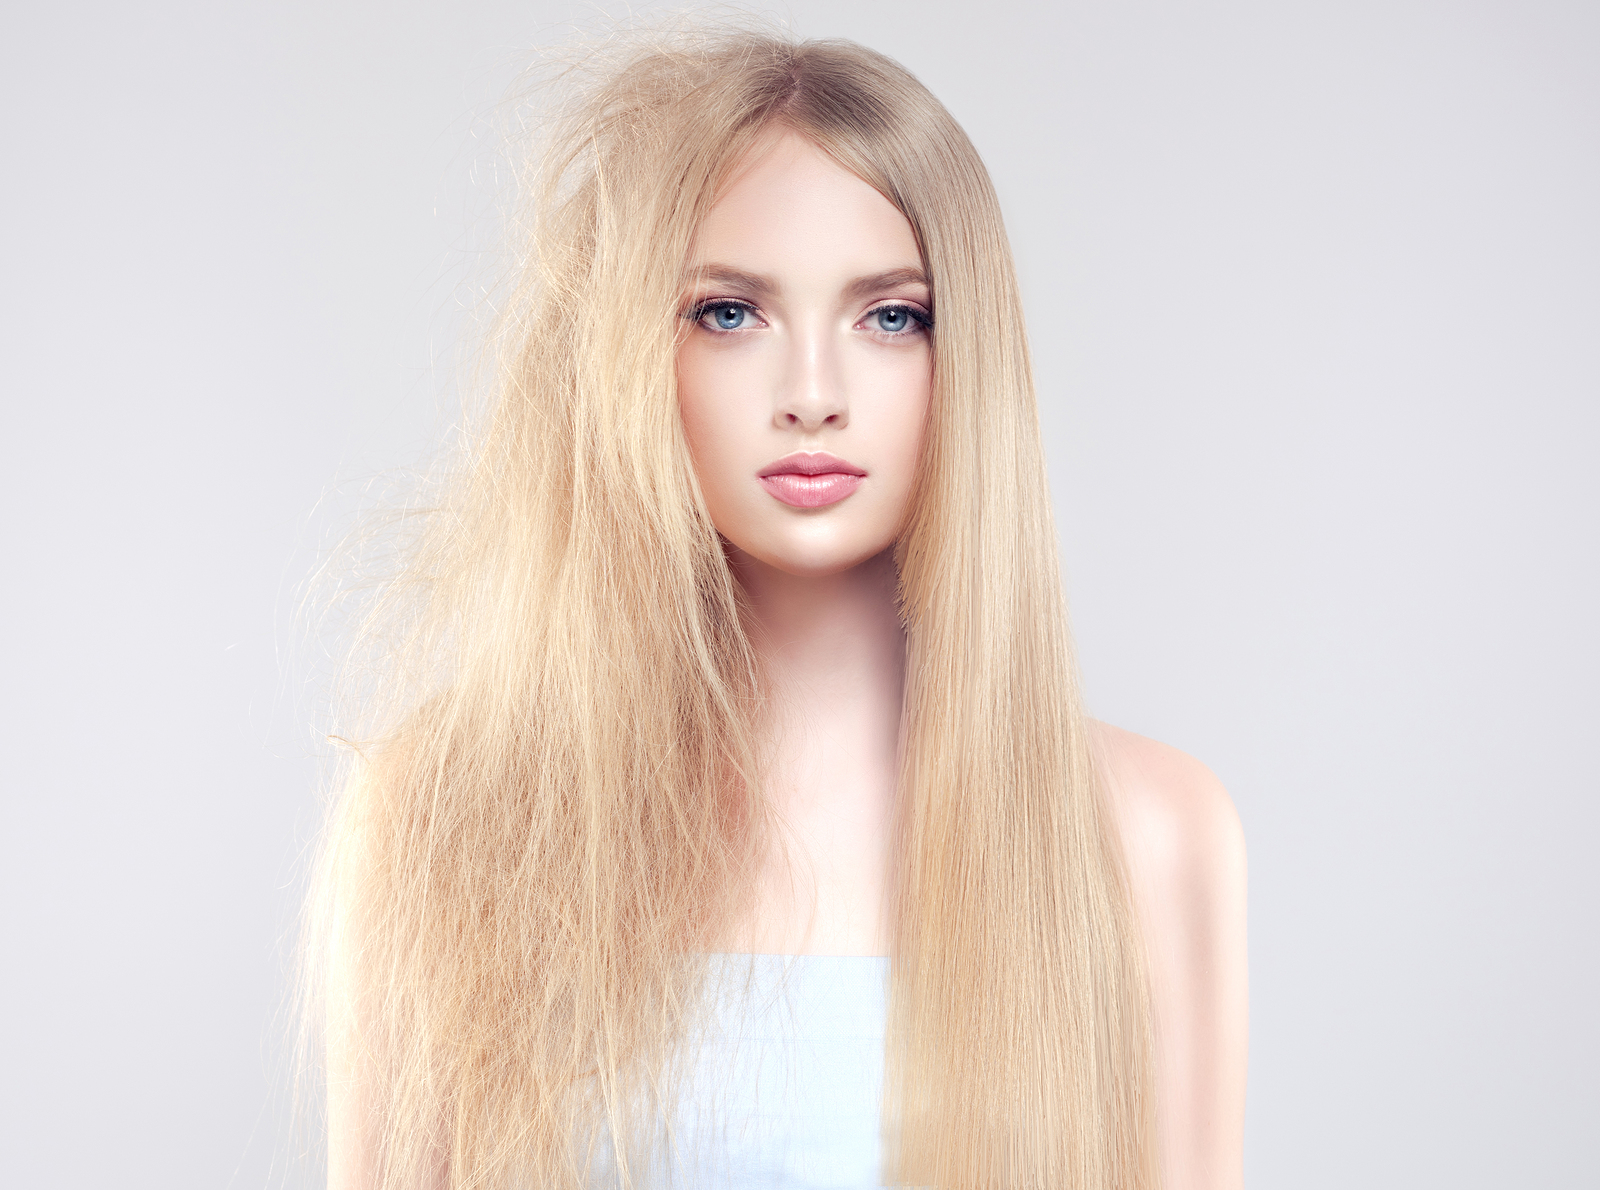 Straightening , smoothing and treatment of the hair . Model girl a half a head straight and smooth hair .The other half of head with tangled unbrushed hair. Care and hair products